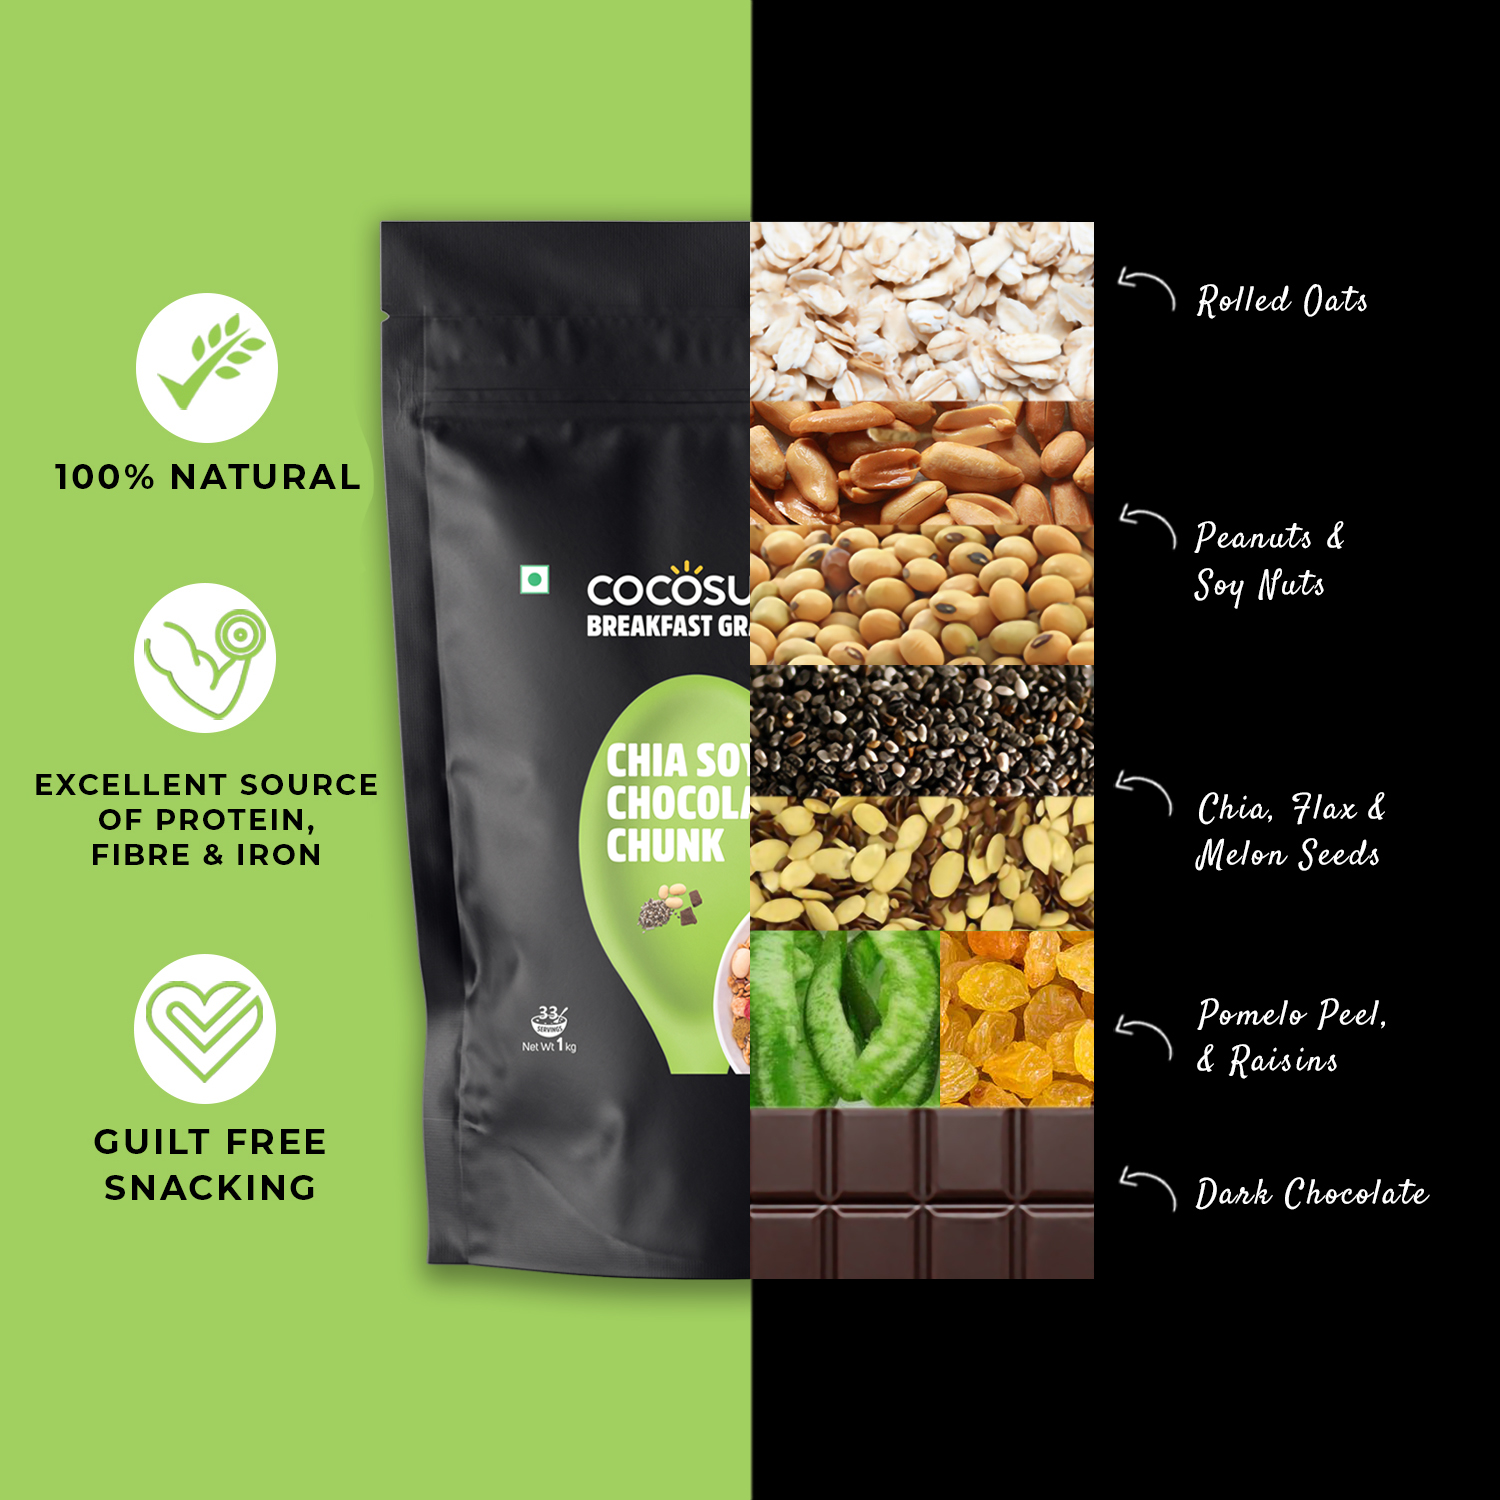 Chia Soya Chocolate Chunk Granola 1kg - Healthy Breakfast Cereal & Snack - High Protein & Natural Ingredients